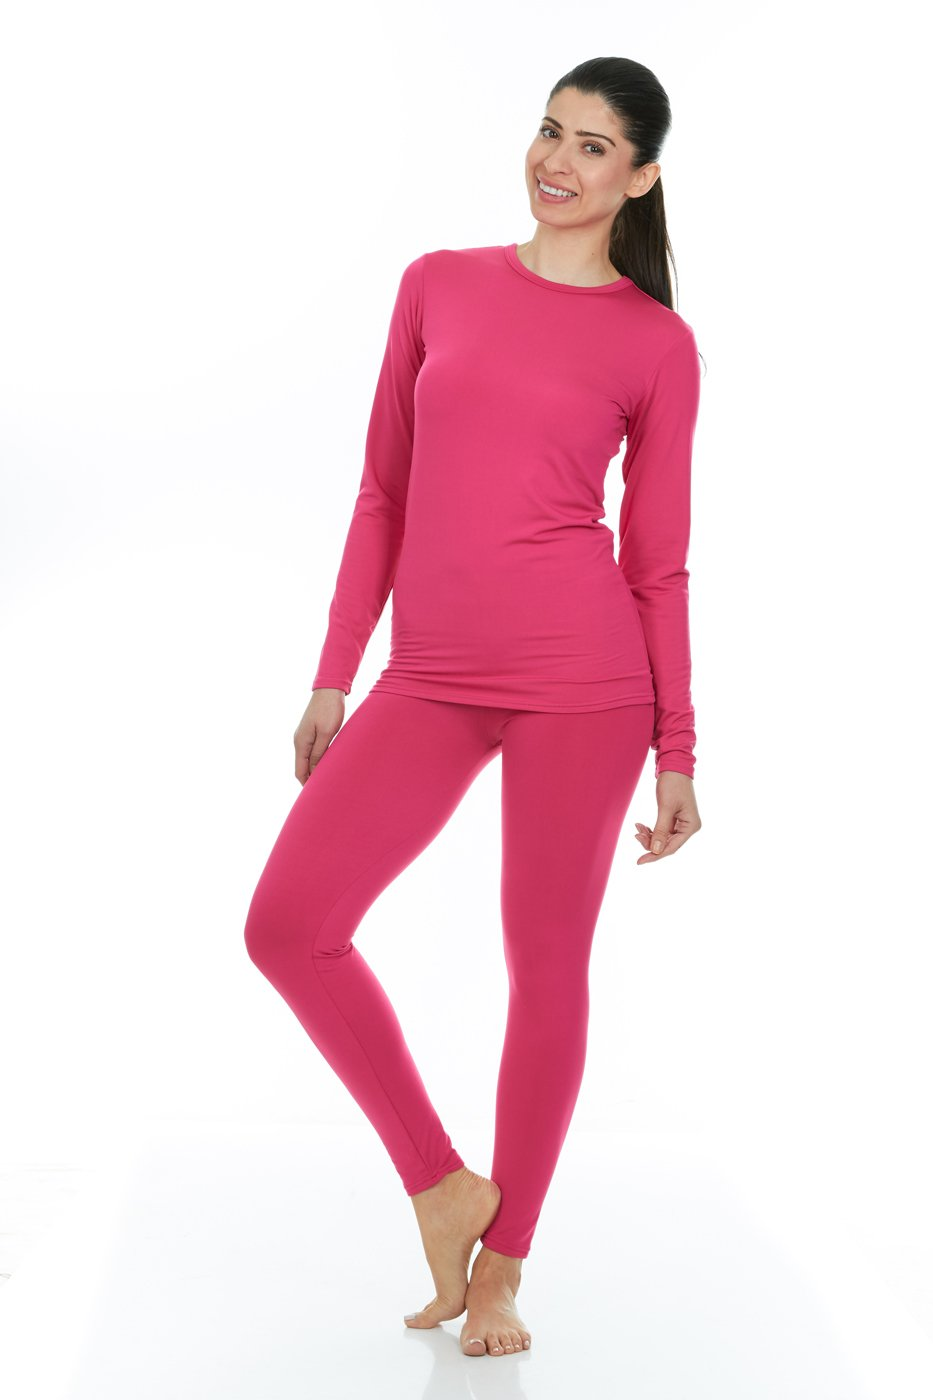 Thermajane Women's Ultra Soft Thermal Underwear Long Johns Set with Fleece Lined (XX-Small, Pink)